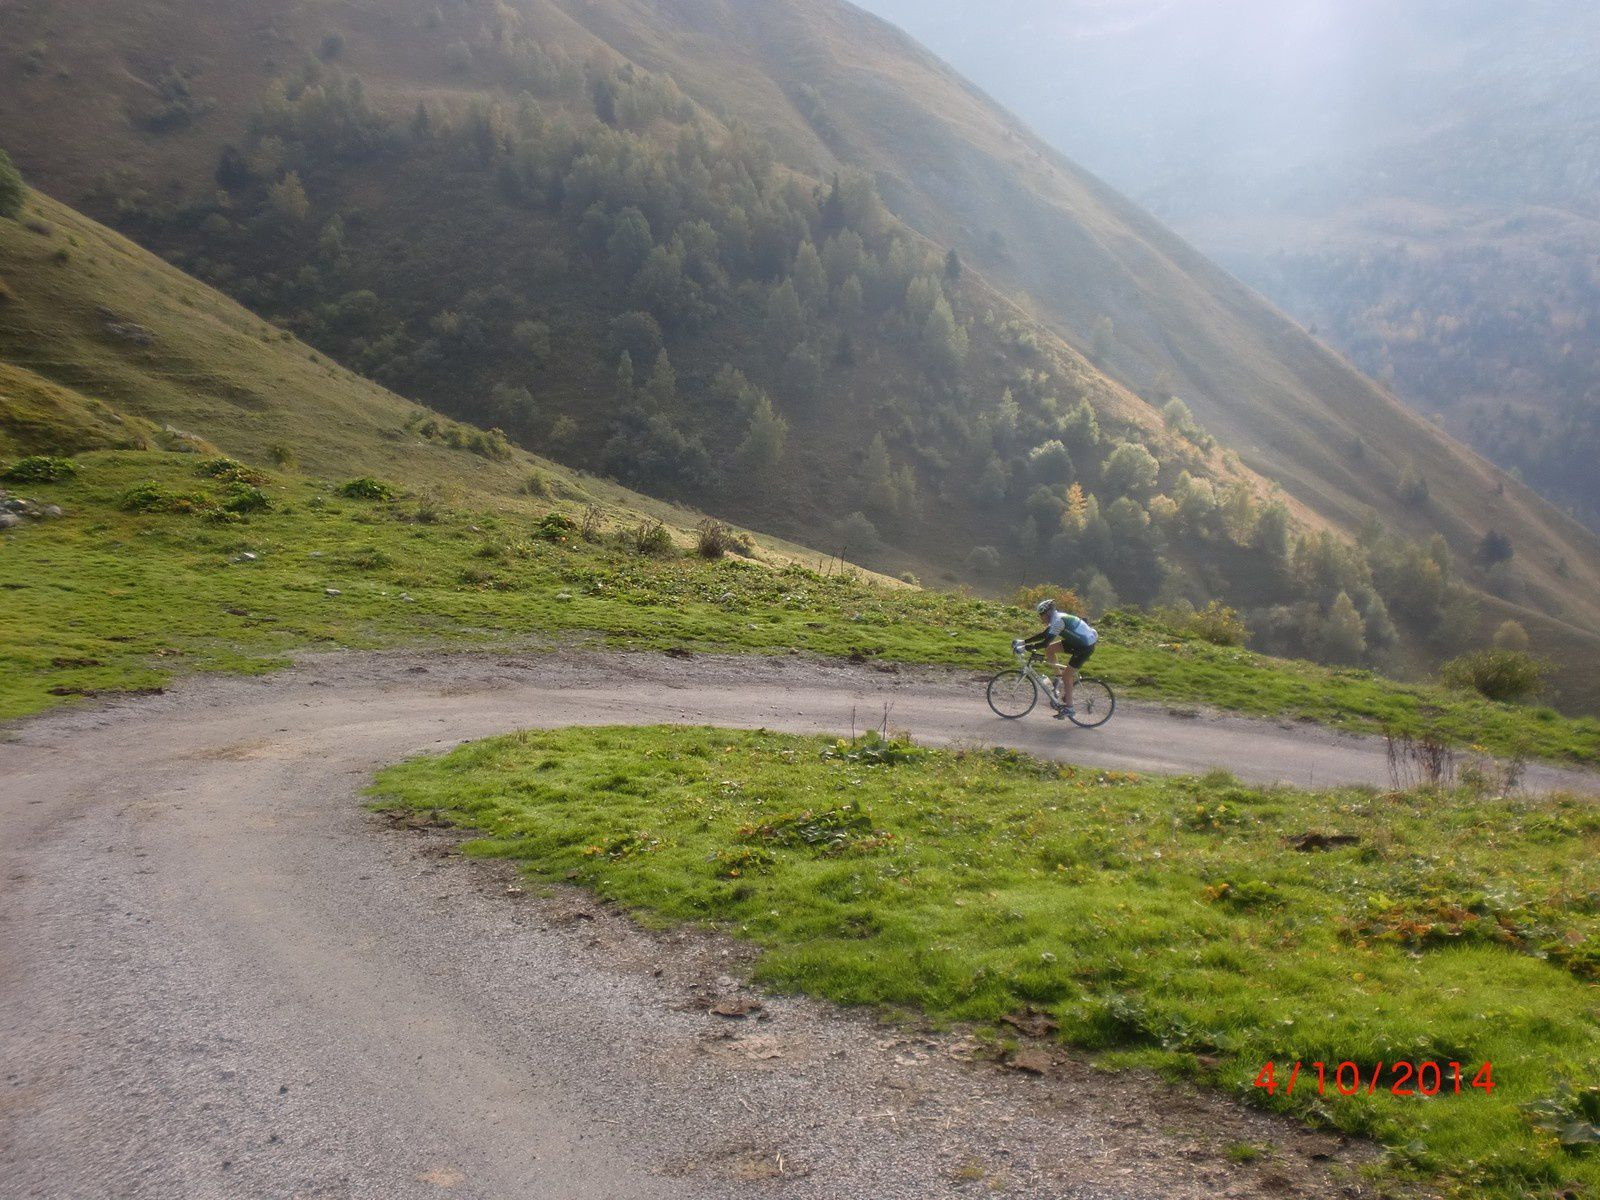 Vers le col du Sabot (photos JC)